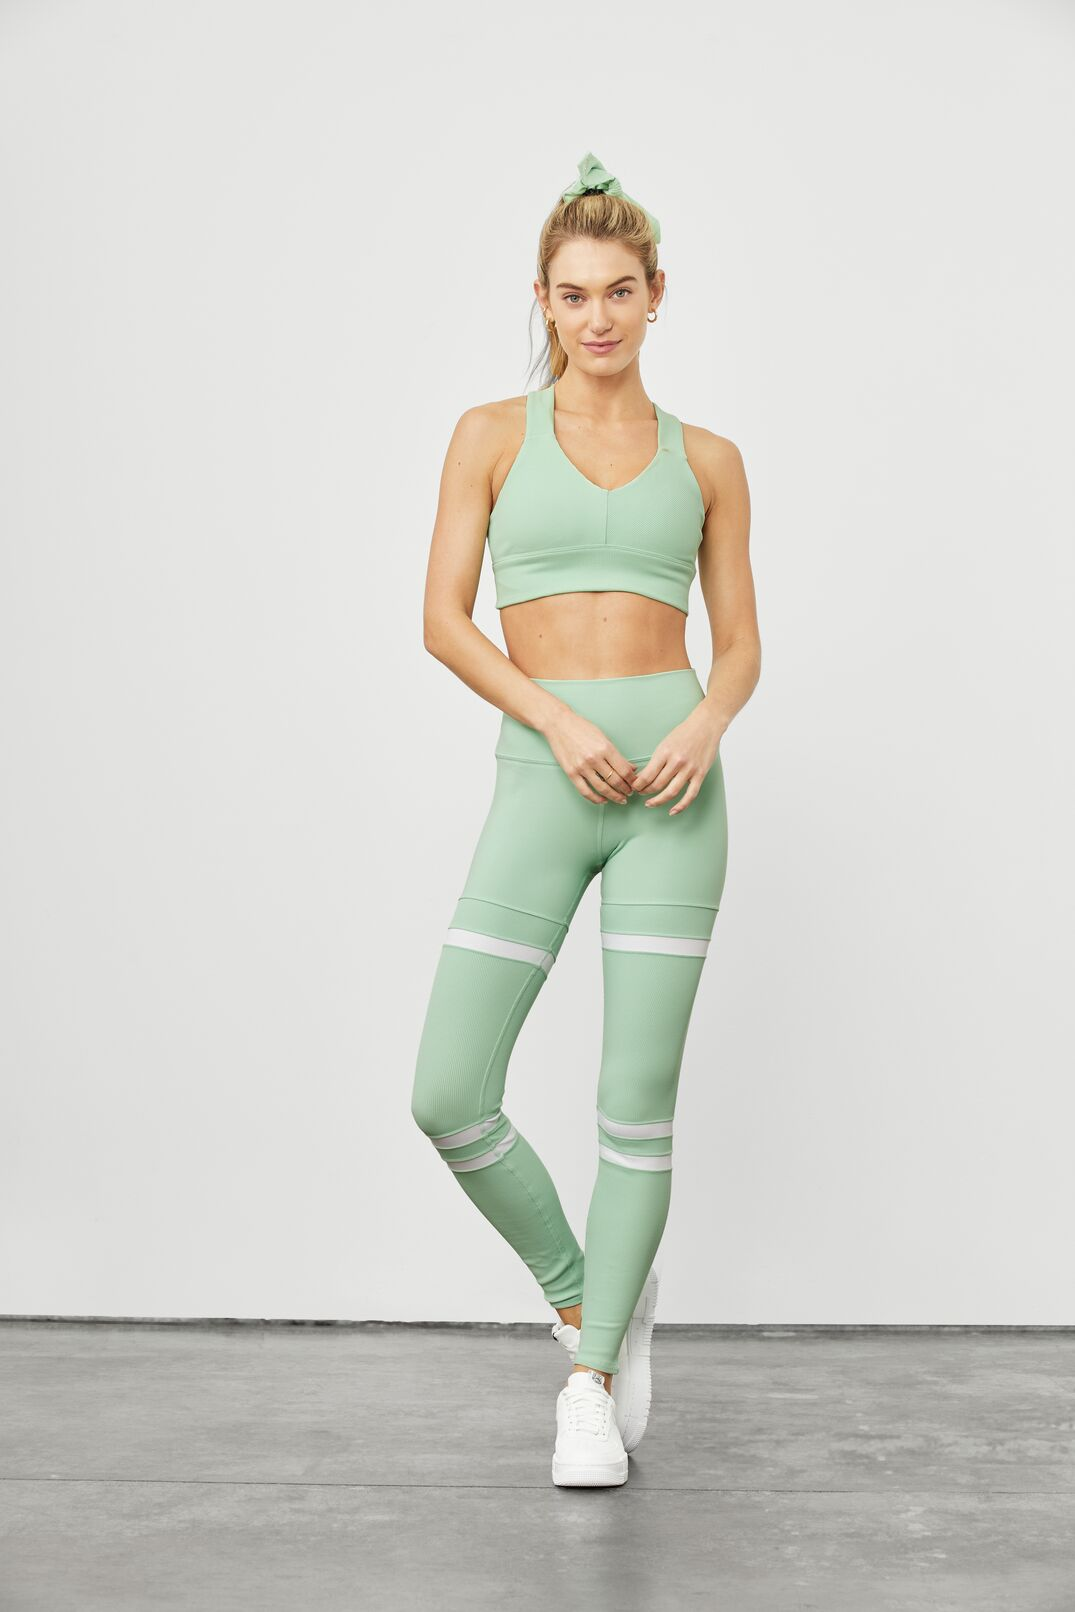 A woman posing against a white wall wearing sporty leggings and sports bra tank.